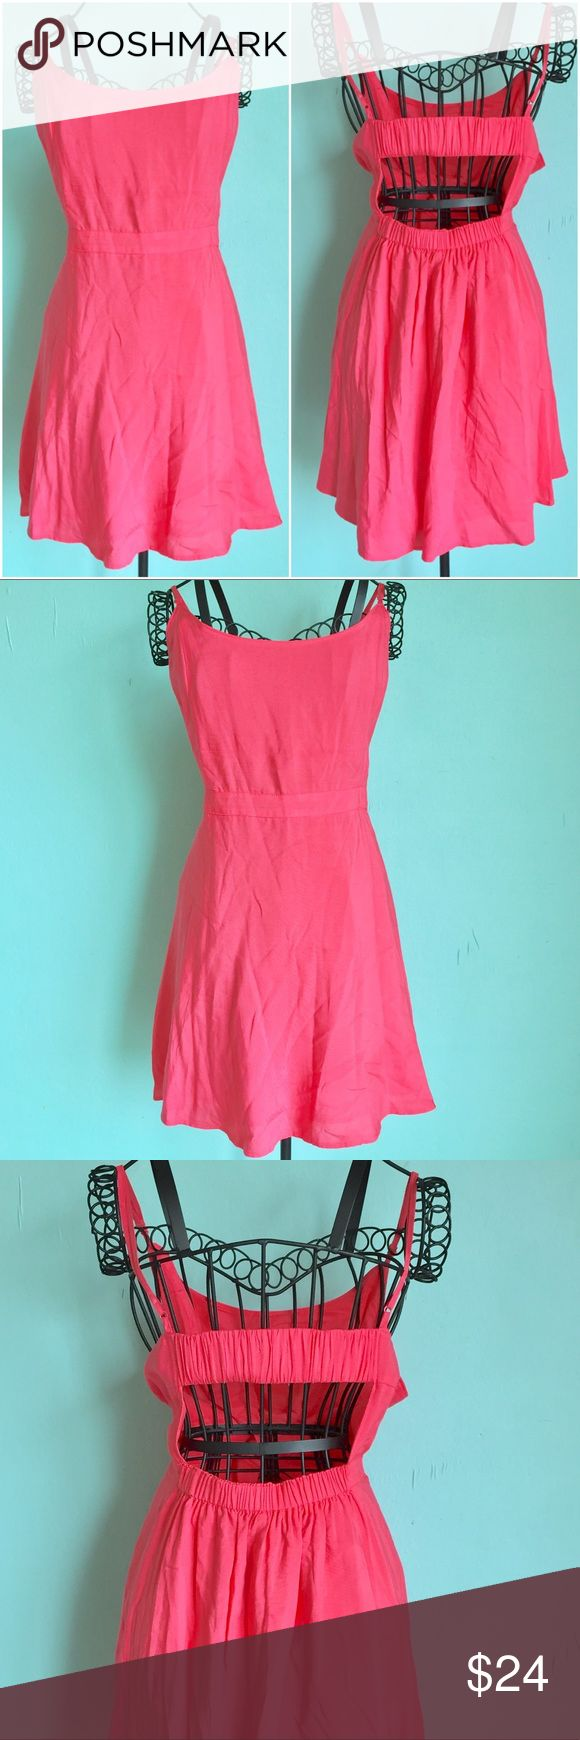 🔥1 HOUR SALE🔥American Eagle Skater Dress Up for sale American Eagle adjustable straps with open back. Beautiful salmon color, bought it never got to wear it out, practically new. Perfect little dress for summer. Size: Large. Check out my closet, bundle and give me your offer! American Eagle Outfitters Dresses